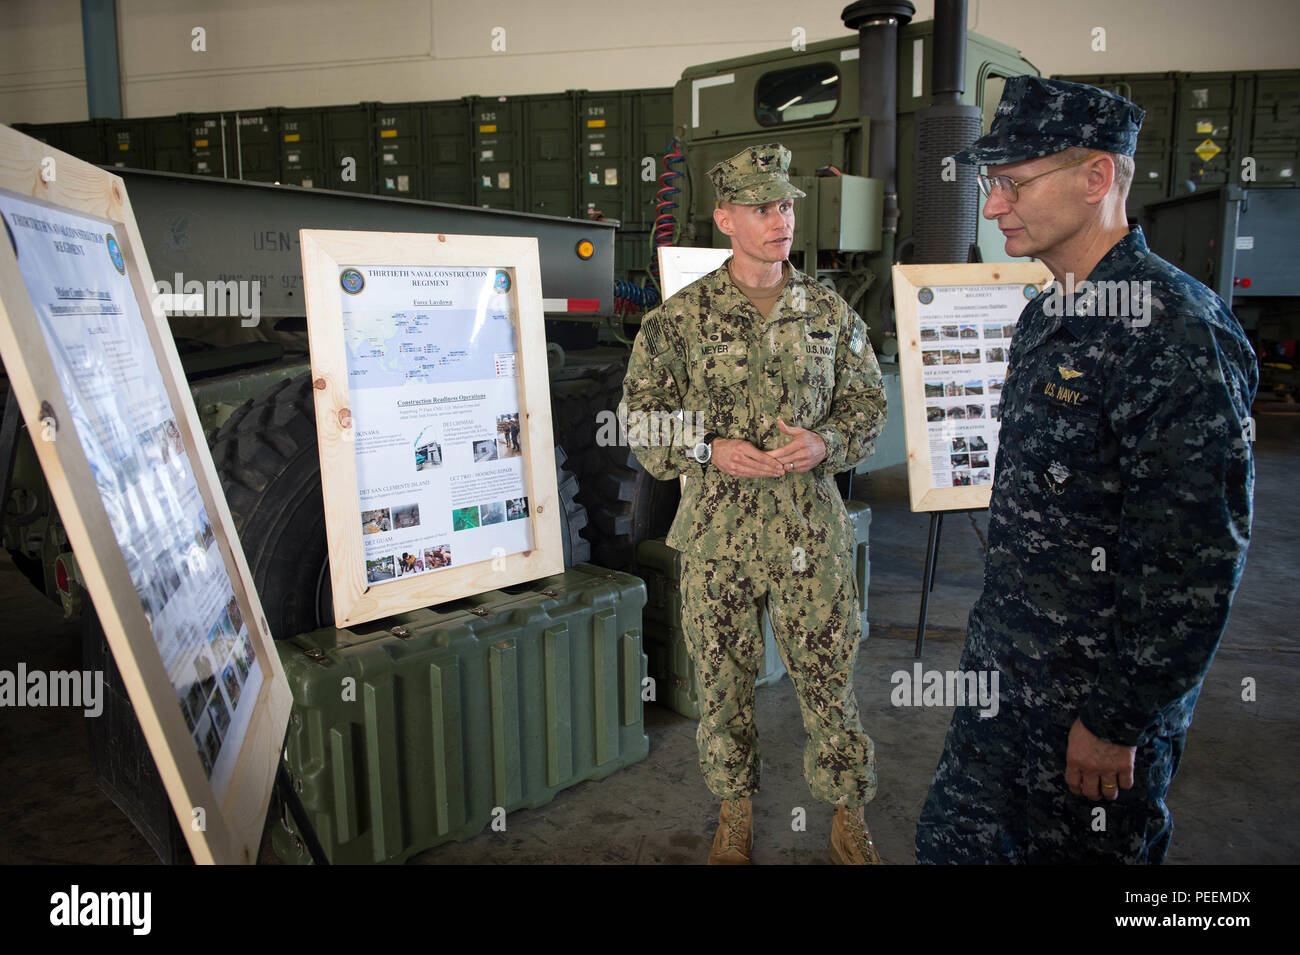 Capt. James G. Meyer, Commodore, 30th Naval Construction Regiment (NCR), briefs Vice Adm. Joseph P. Aucoin, Commander, U.S. Seventh Fleet, on NMCB 1 civil engineer support equipment (CESE) capabilities at Naval Base Guam, Jan. 22, 2016. NMCB 1 provides expeditionary construction and engineering (combat service support) to include horizontal and vertical construction; maintenance and operation of expeditionary bases and facilities; tactical sustainment bridging, Humanitarian Assistance (HA) through Construction Civic Action Details (CCAD) and Civic Action Teams (CAT) and theater disaster respon - Stock Image